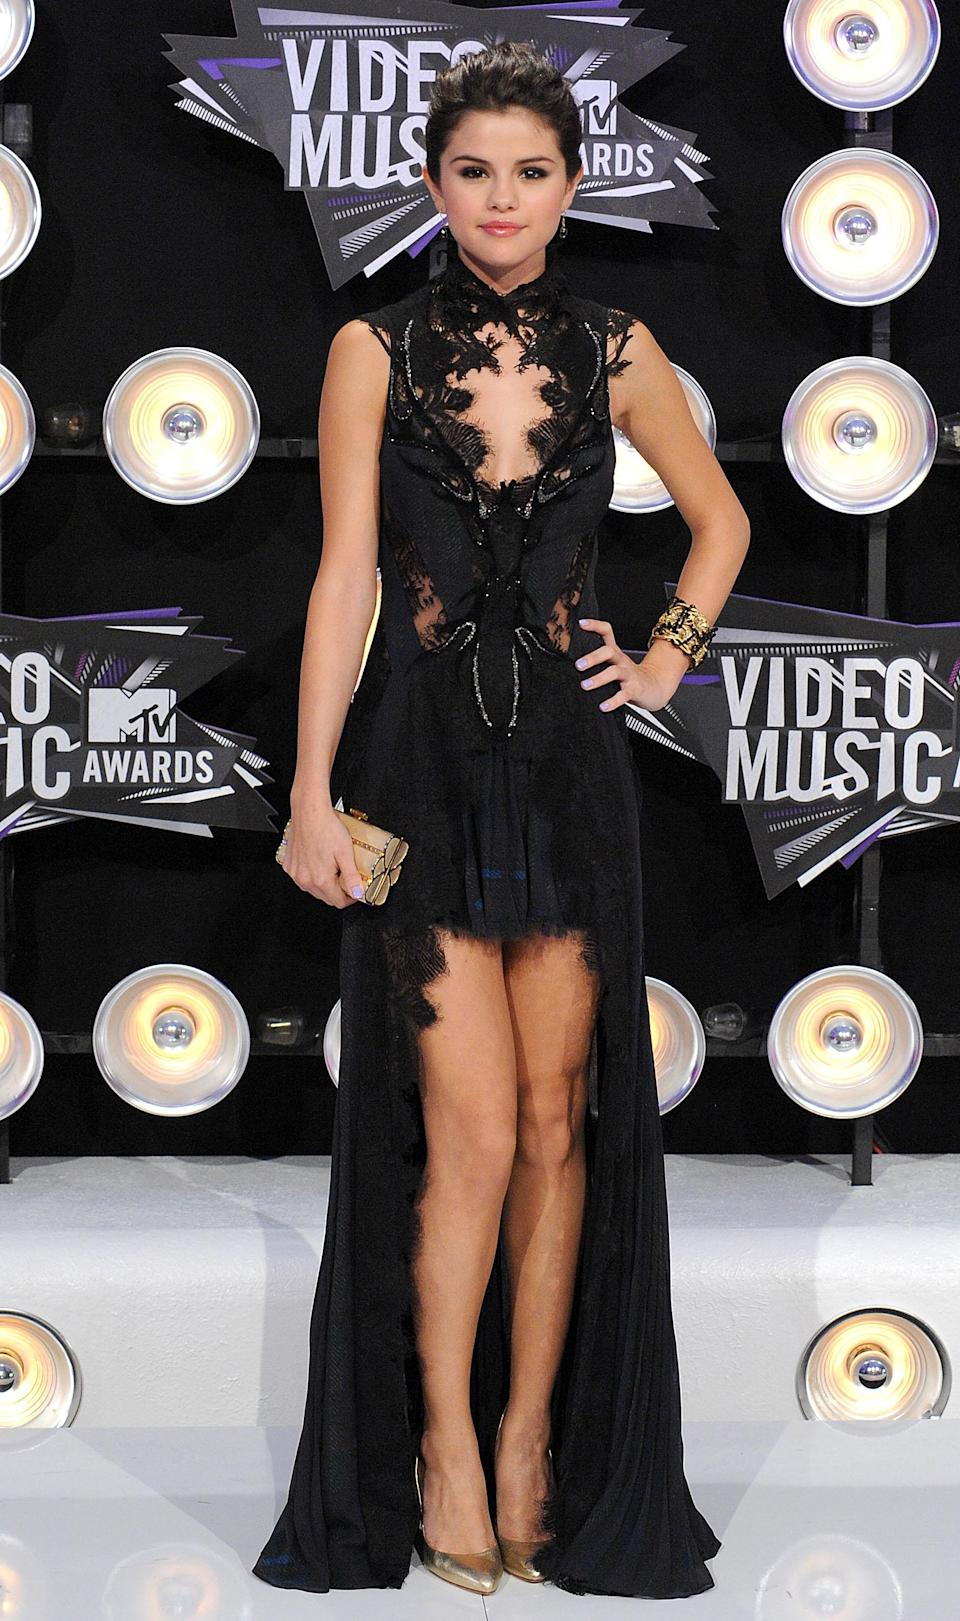 Selena Gomez opted for dark romance in a gown from British designer Julien Macdonald.